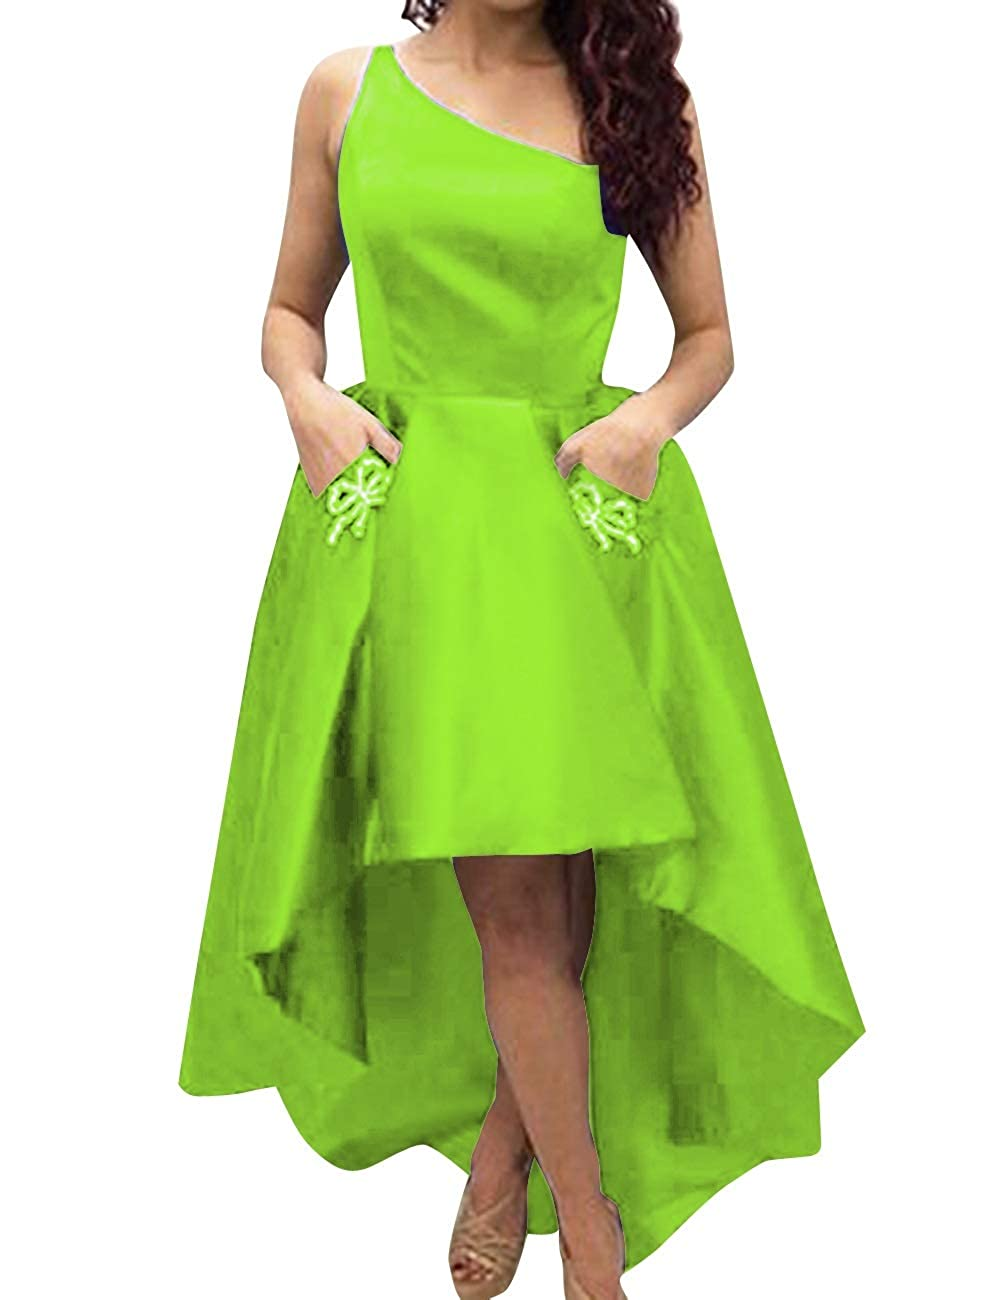 Lime Green MorySong Women's One Shoulder High Low Sain Prom Cocktail Dress with Pockets